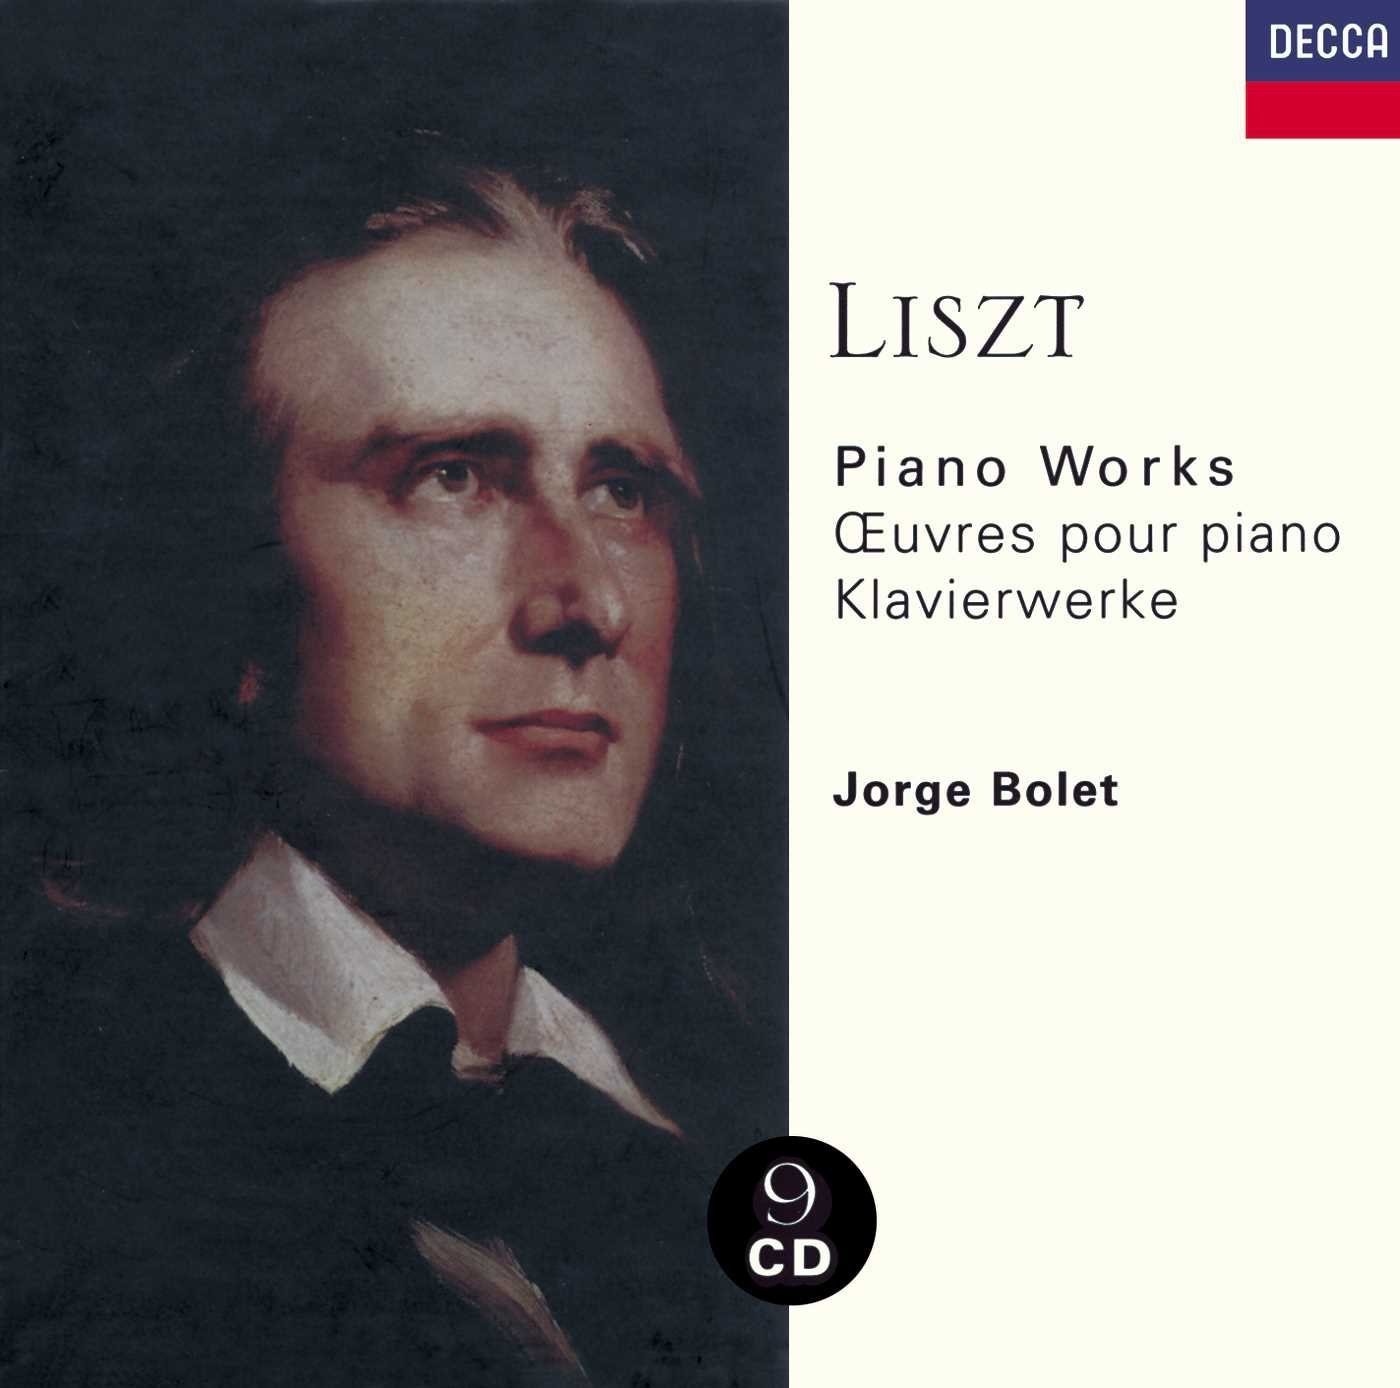 Piano Works [9 CD Box Set] by LISZT,F.